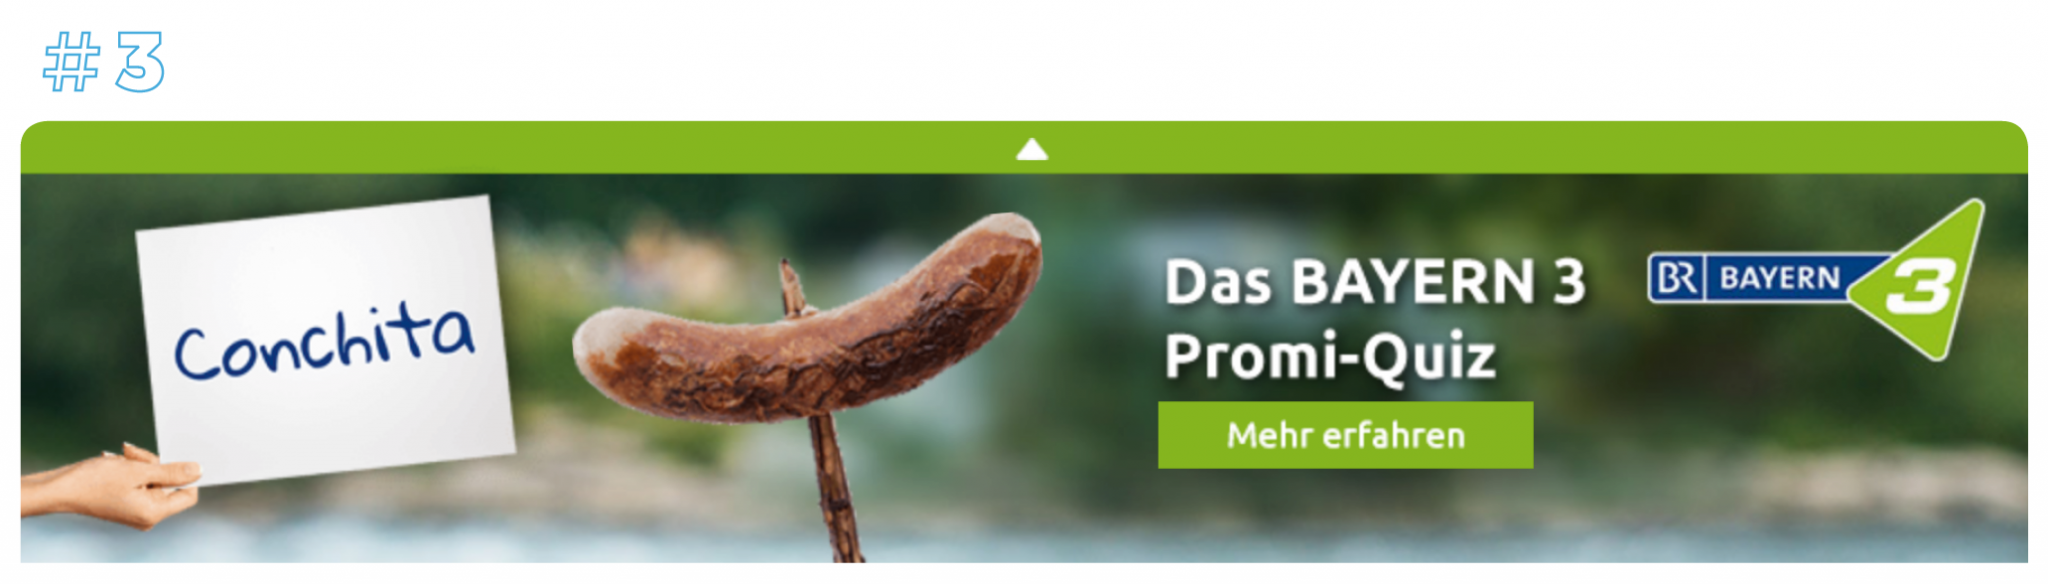 In this image you can see a plista campaign from Bayern 3